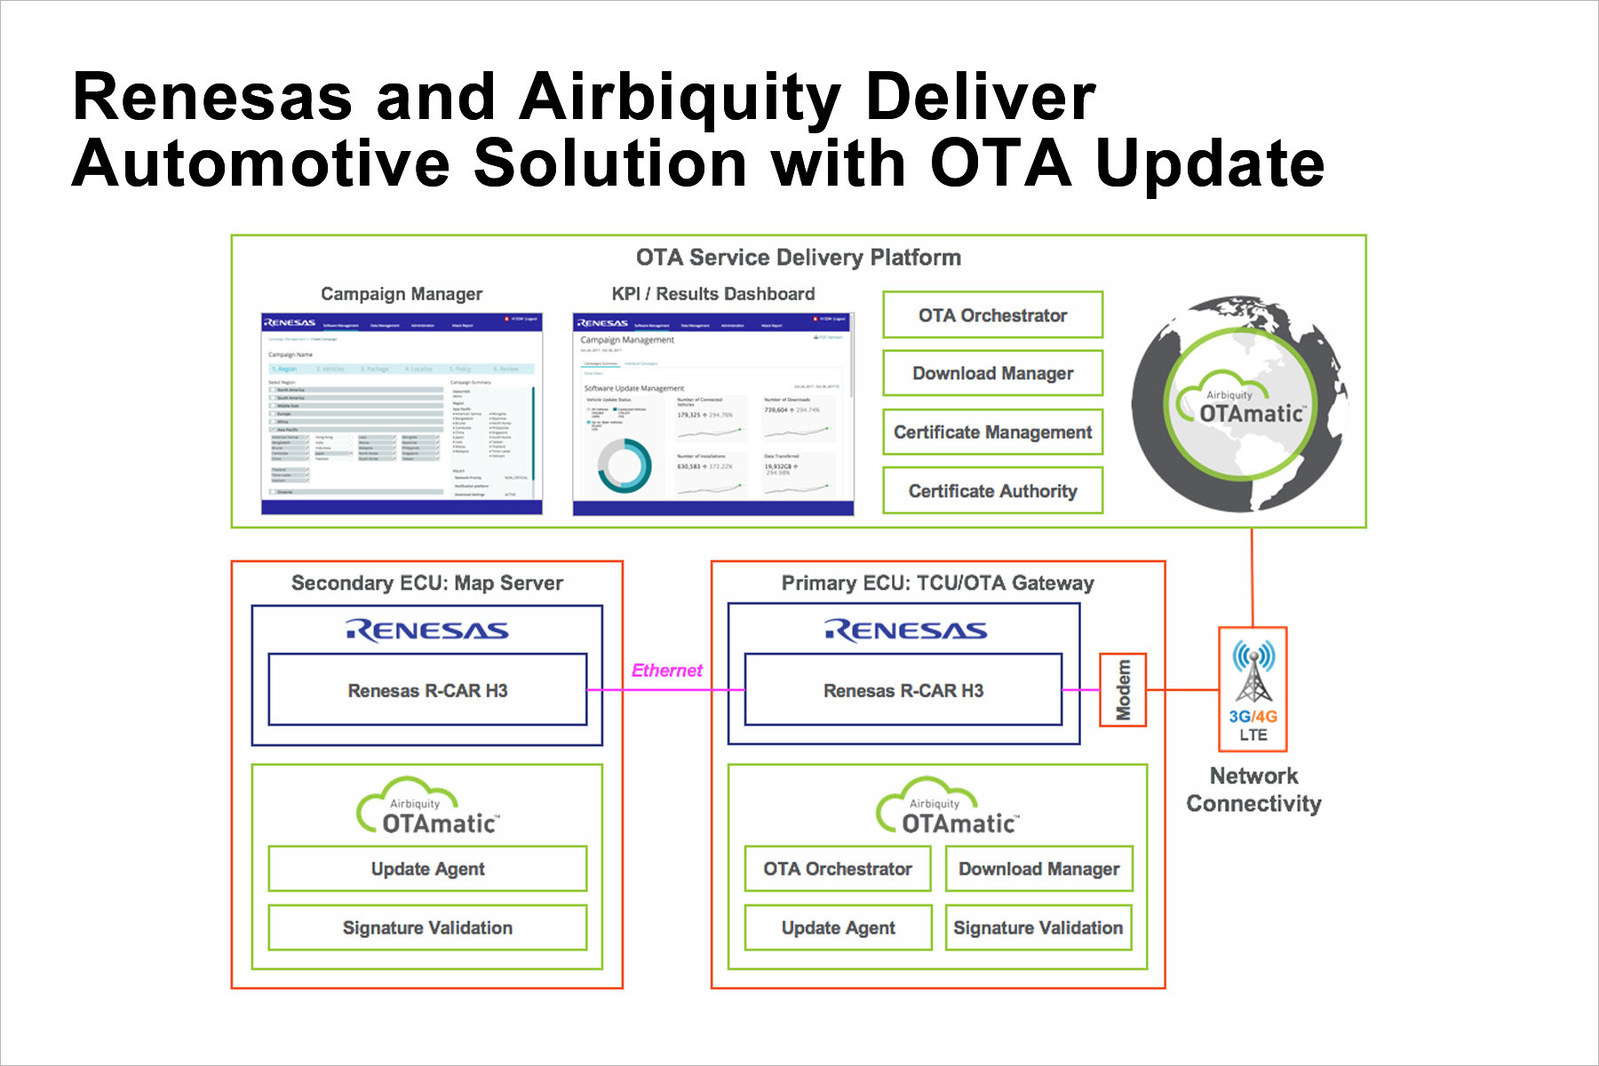 Renesas and Airbiquity announce a secure, high-performance automotive solution for ADAS, V2X, and automated driving applications